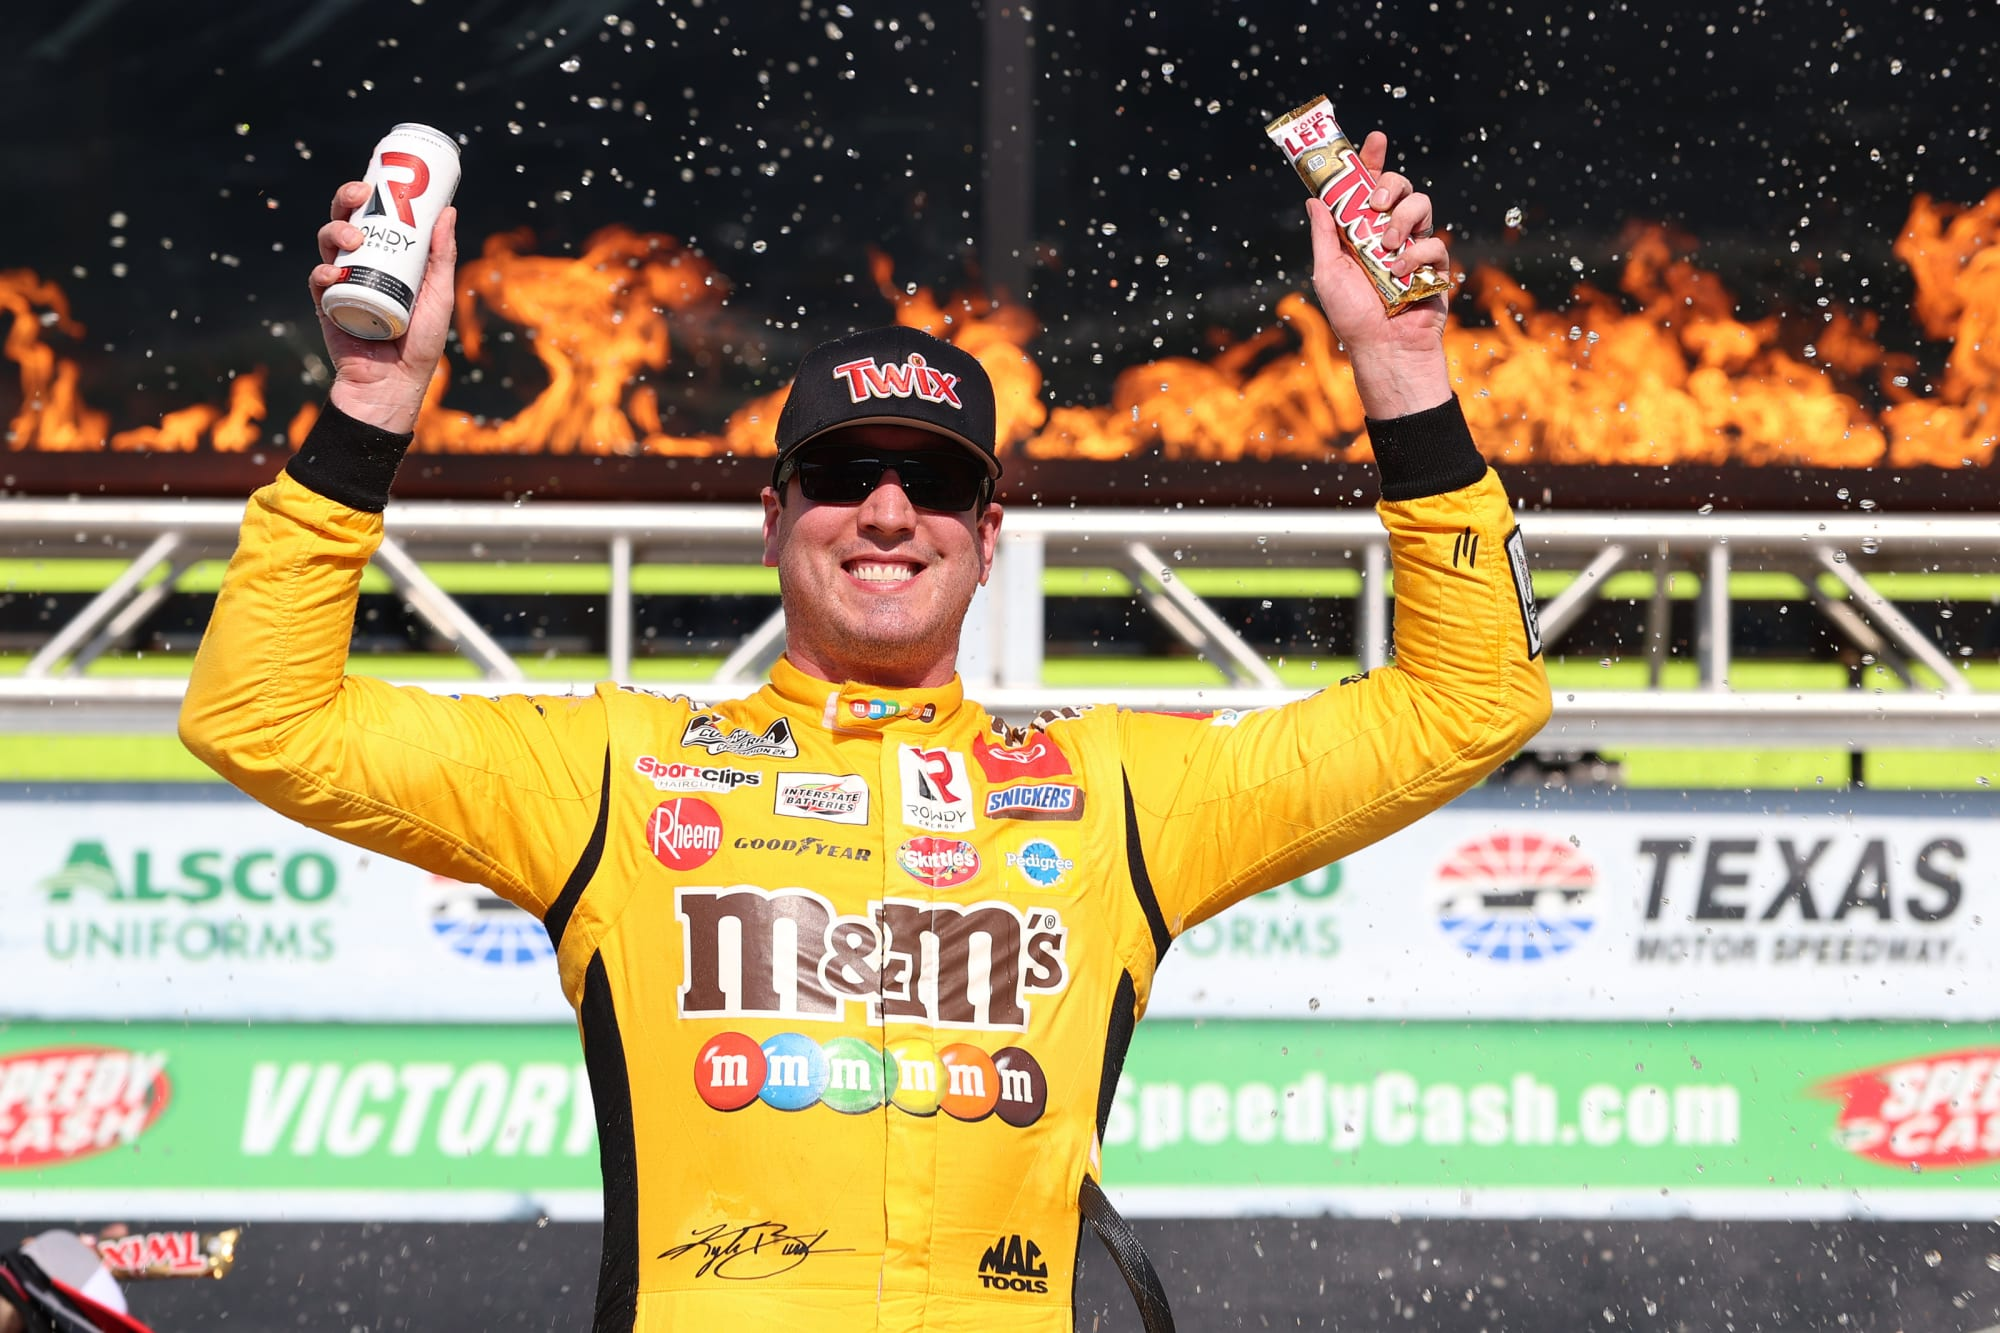 NASCAR: Kyle Busch just one win away from retirement?